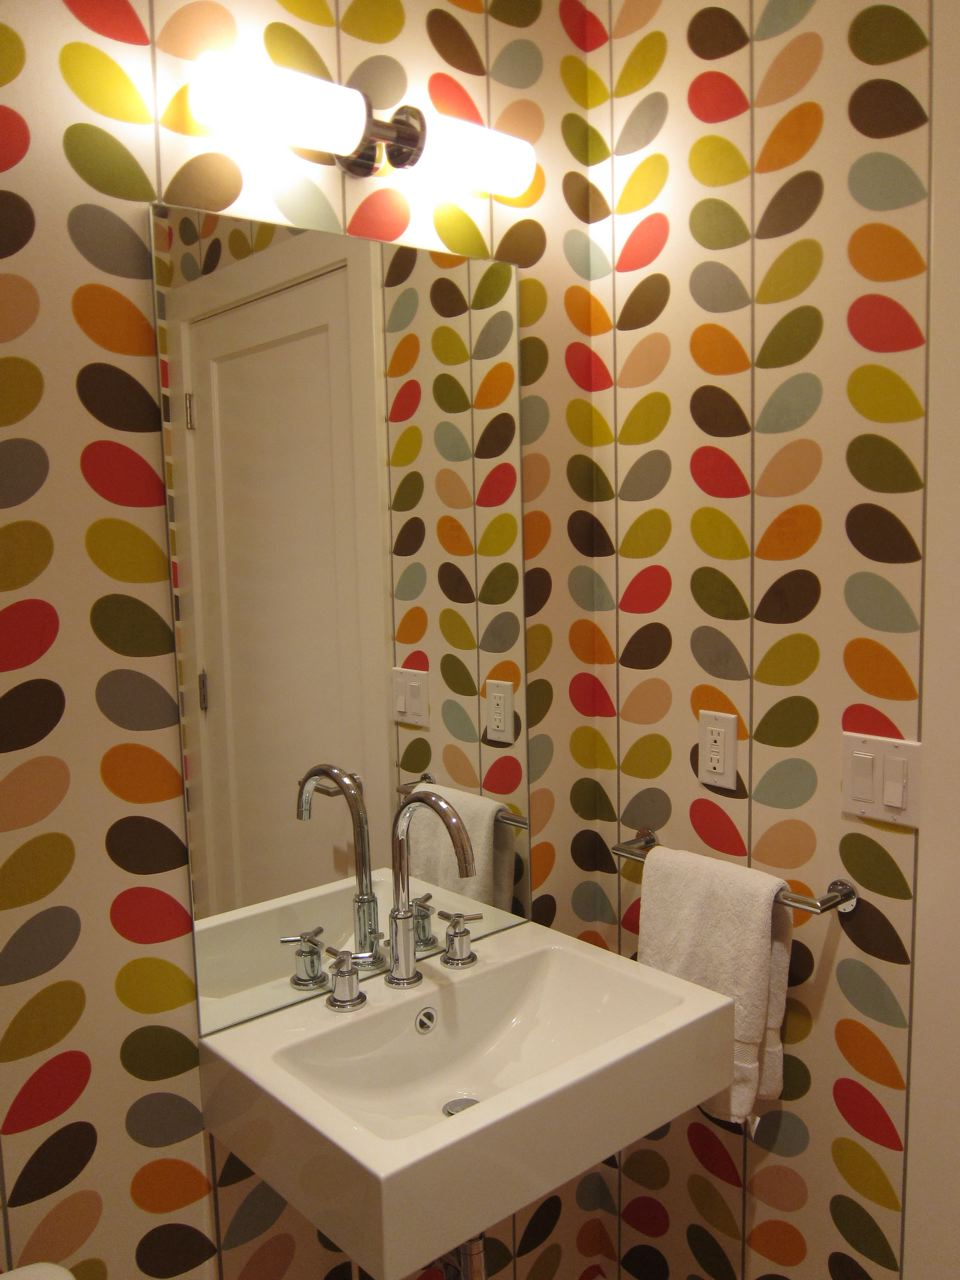 Orla-Kiely-available-at-www-removablewallpape-wallpaper-wp300740